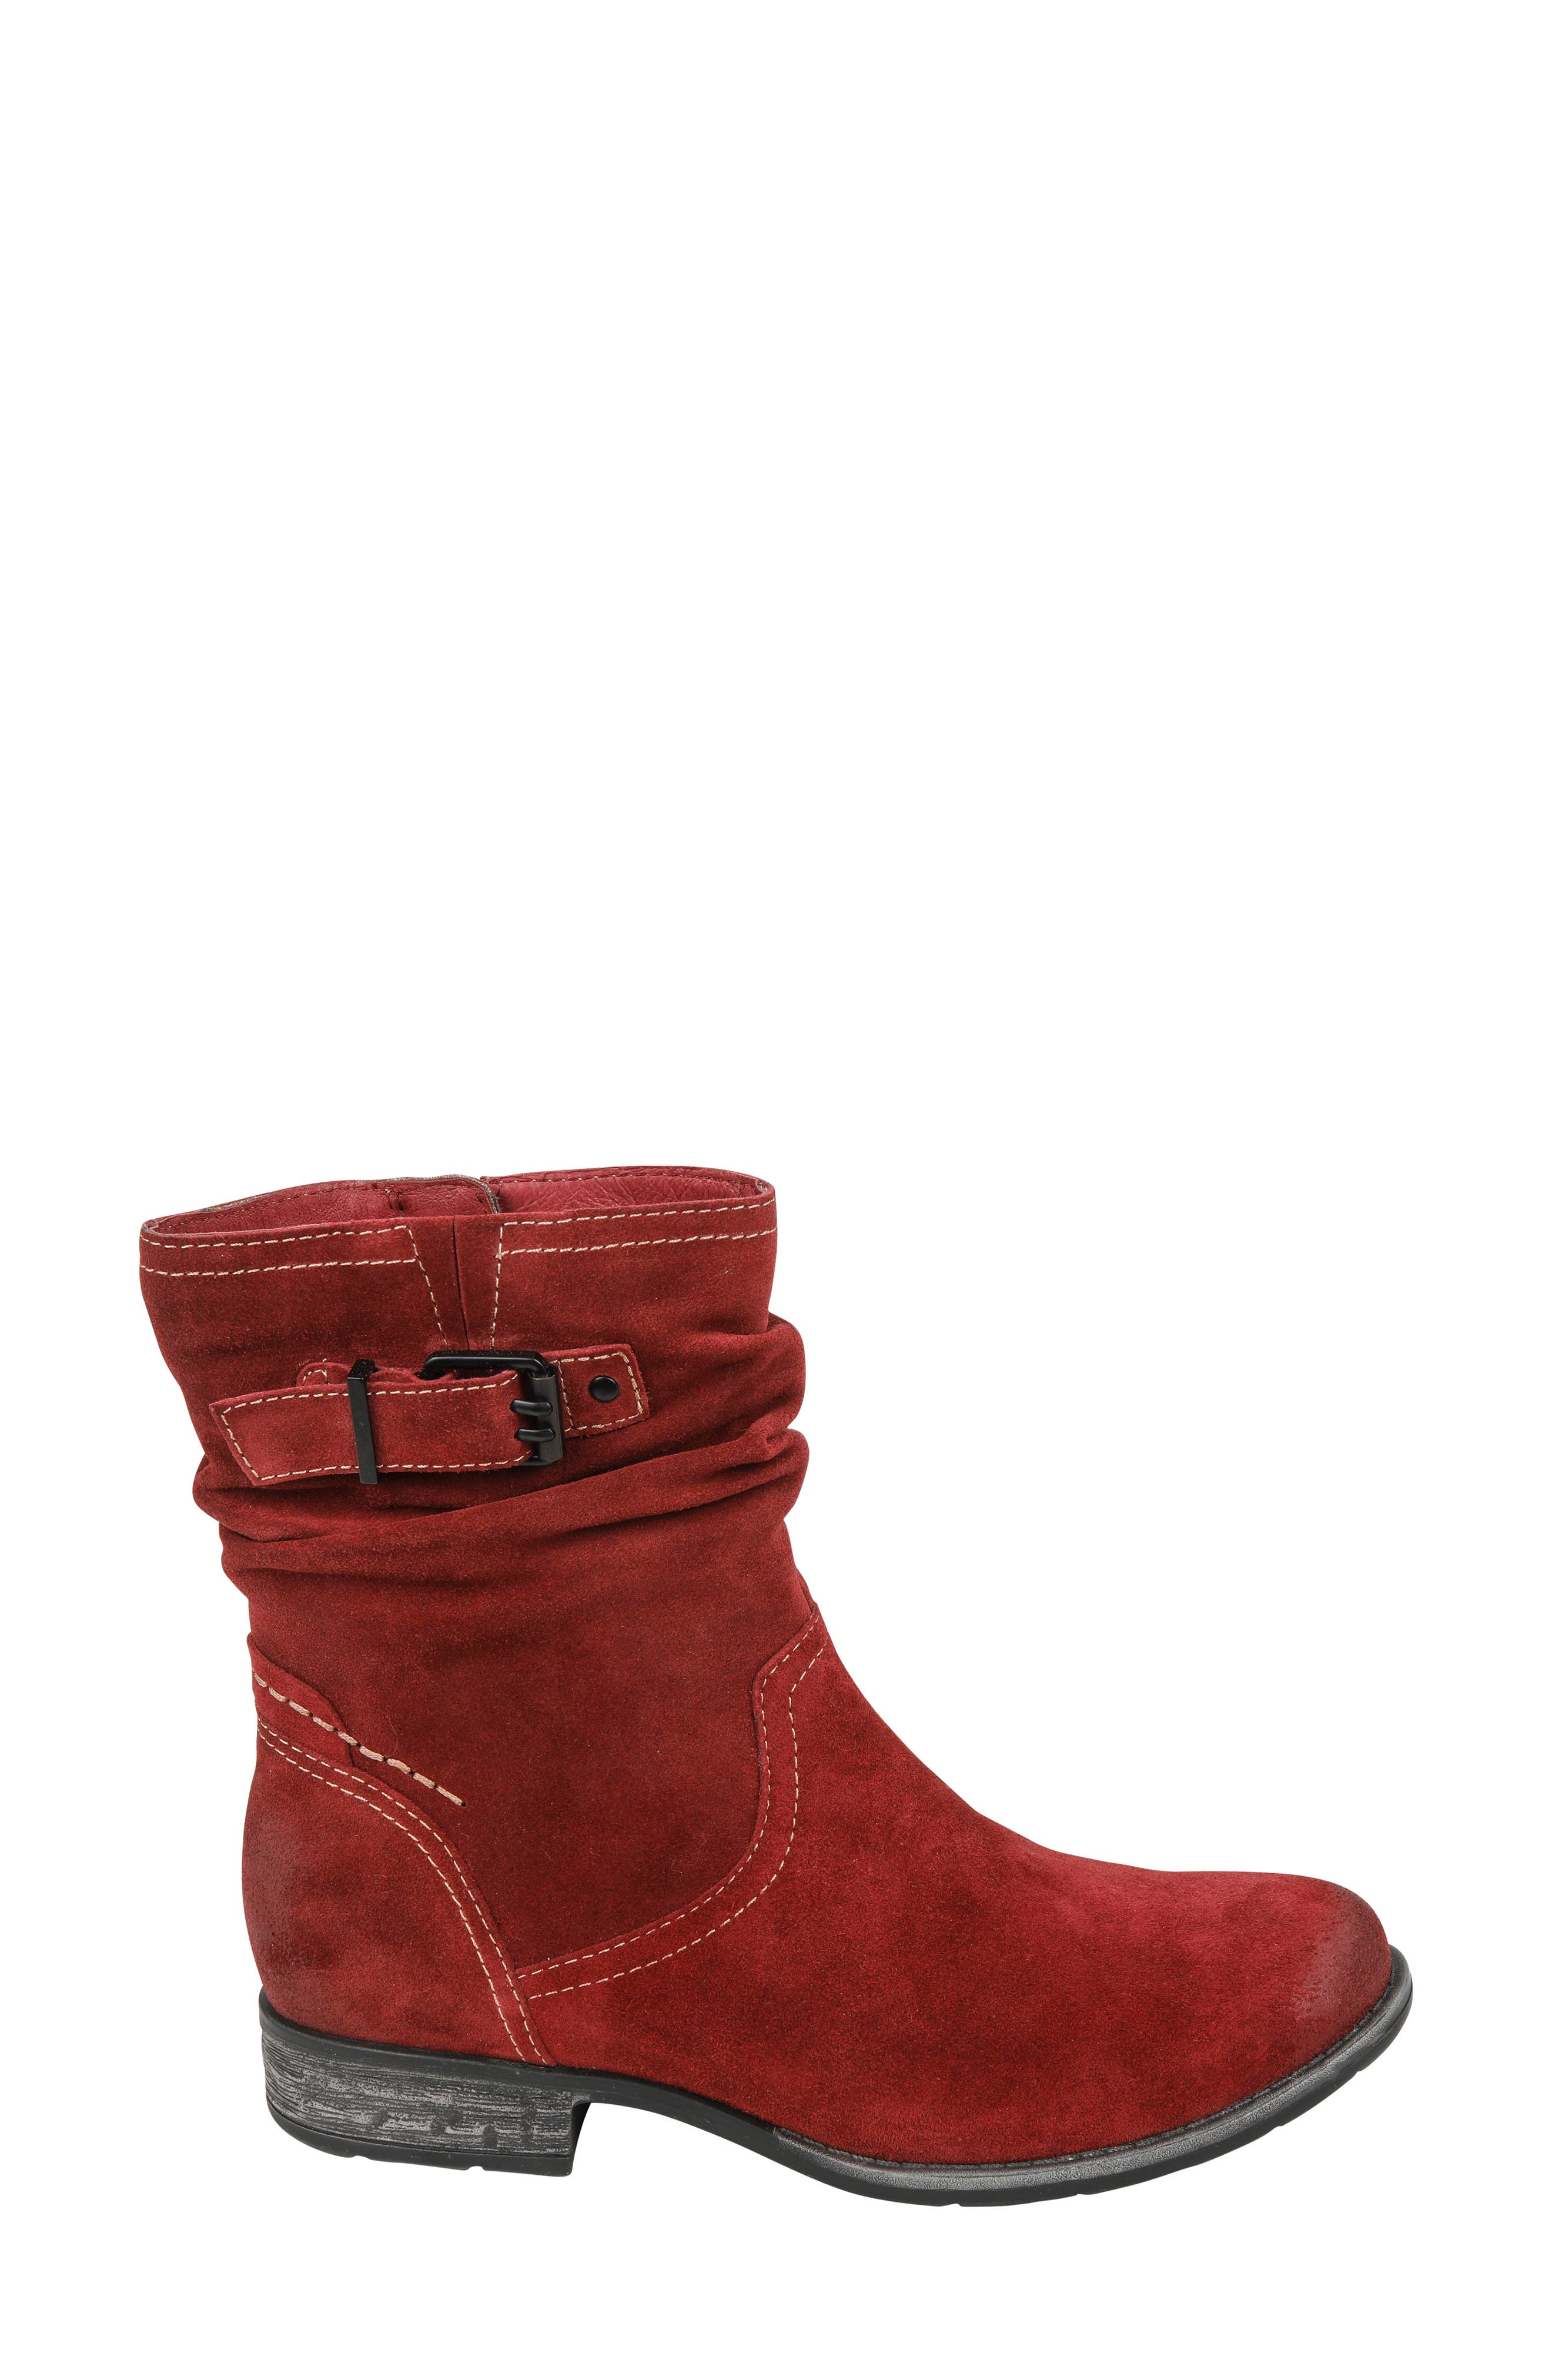 Beaufort Boot,                             Alternate thumbnail 3, color,                             GARNET SUEDE